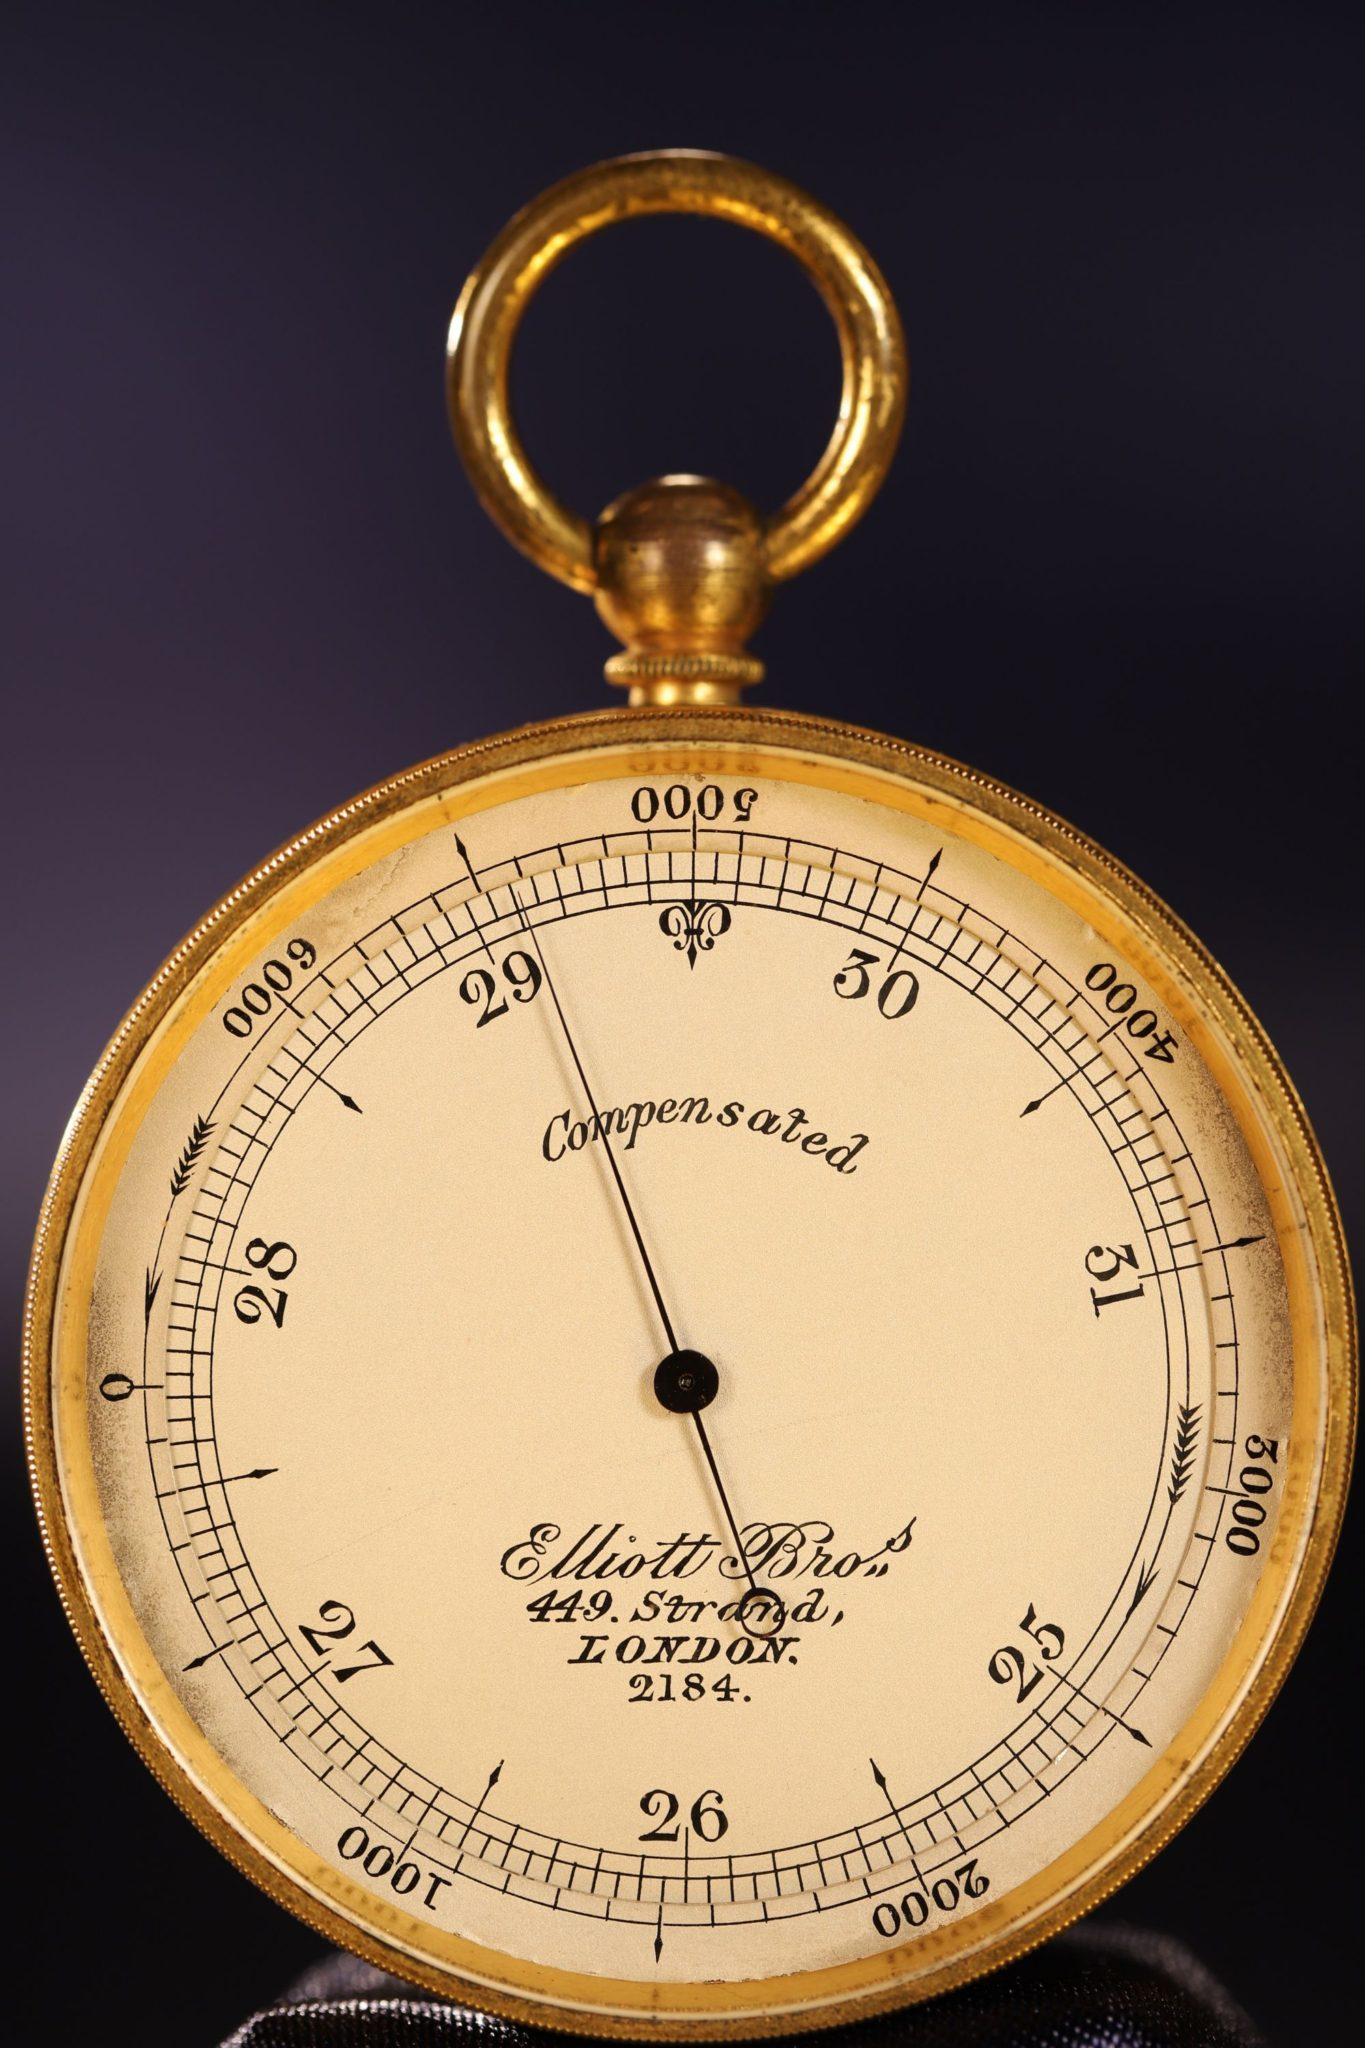 Image of Elliott Brothers Antique Pocket Barometer No 2184